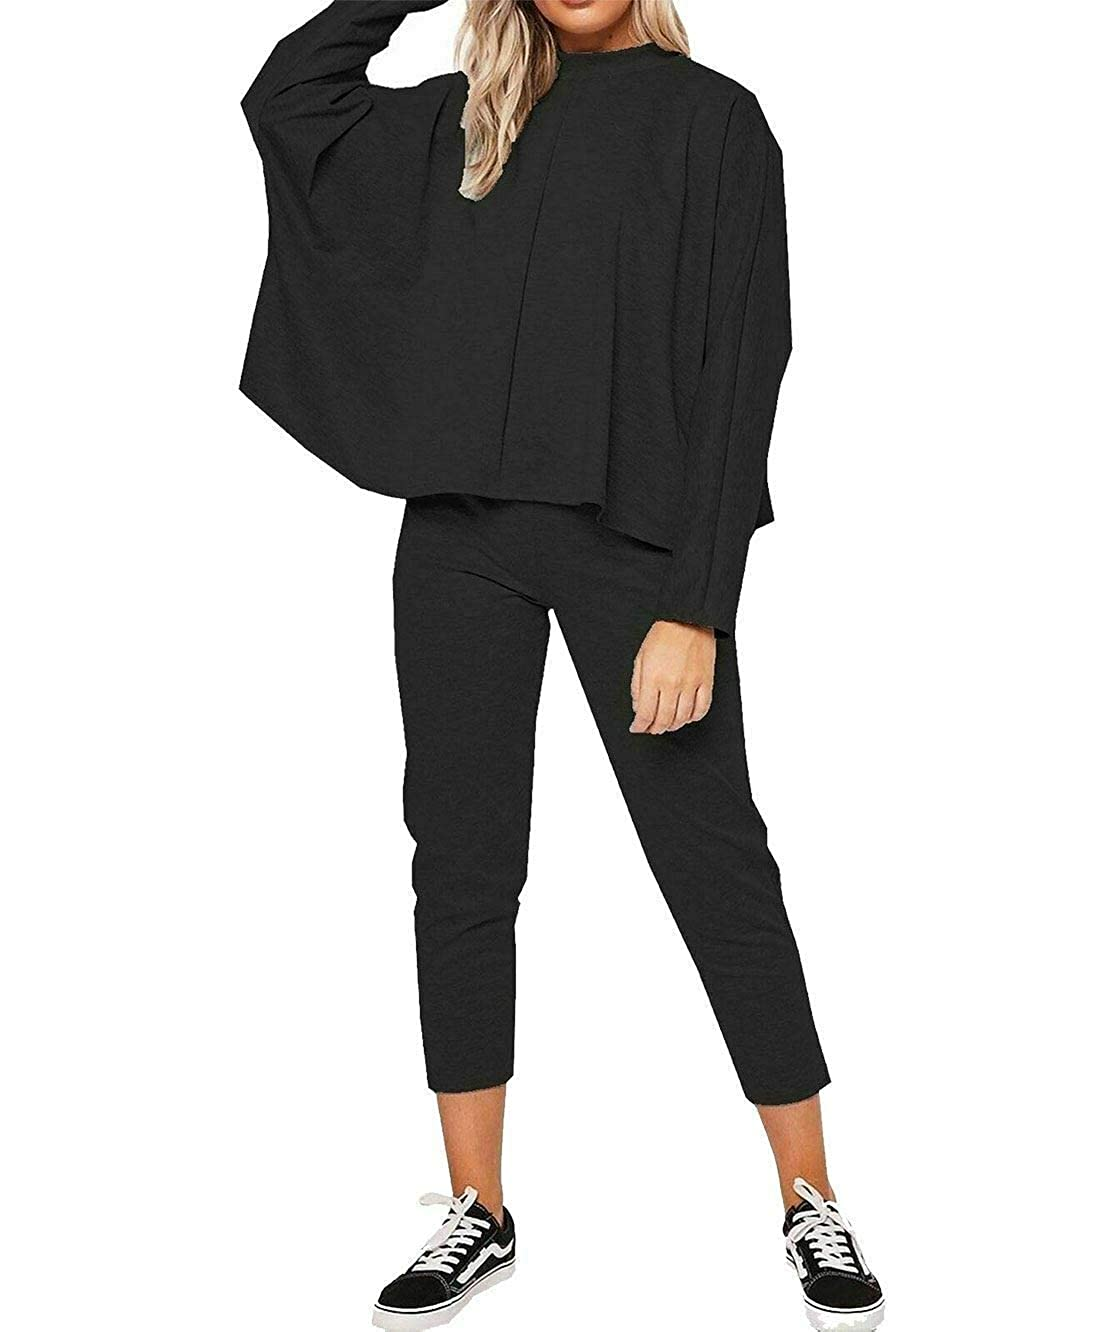 Womens Long Batwing Sleeve Top and Lounge Wear Bottom Set Ladies Jogging Tracksuit